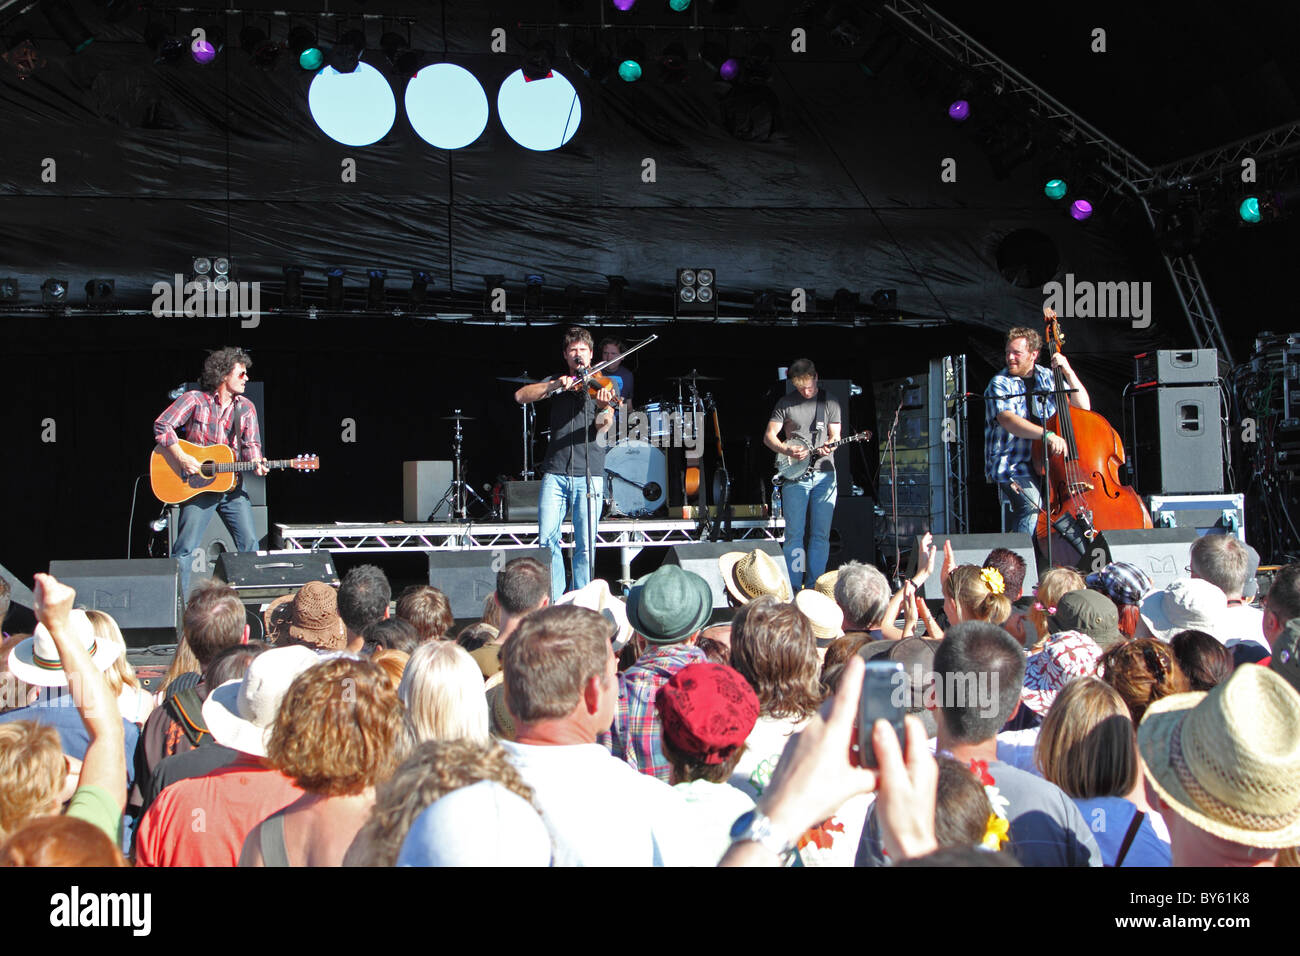 Seth Lakeman appearing on the Good Time Guide Stage at GuilFest 2010 music festival, Stoke Park, Guildford, Surrey, - Stock Image